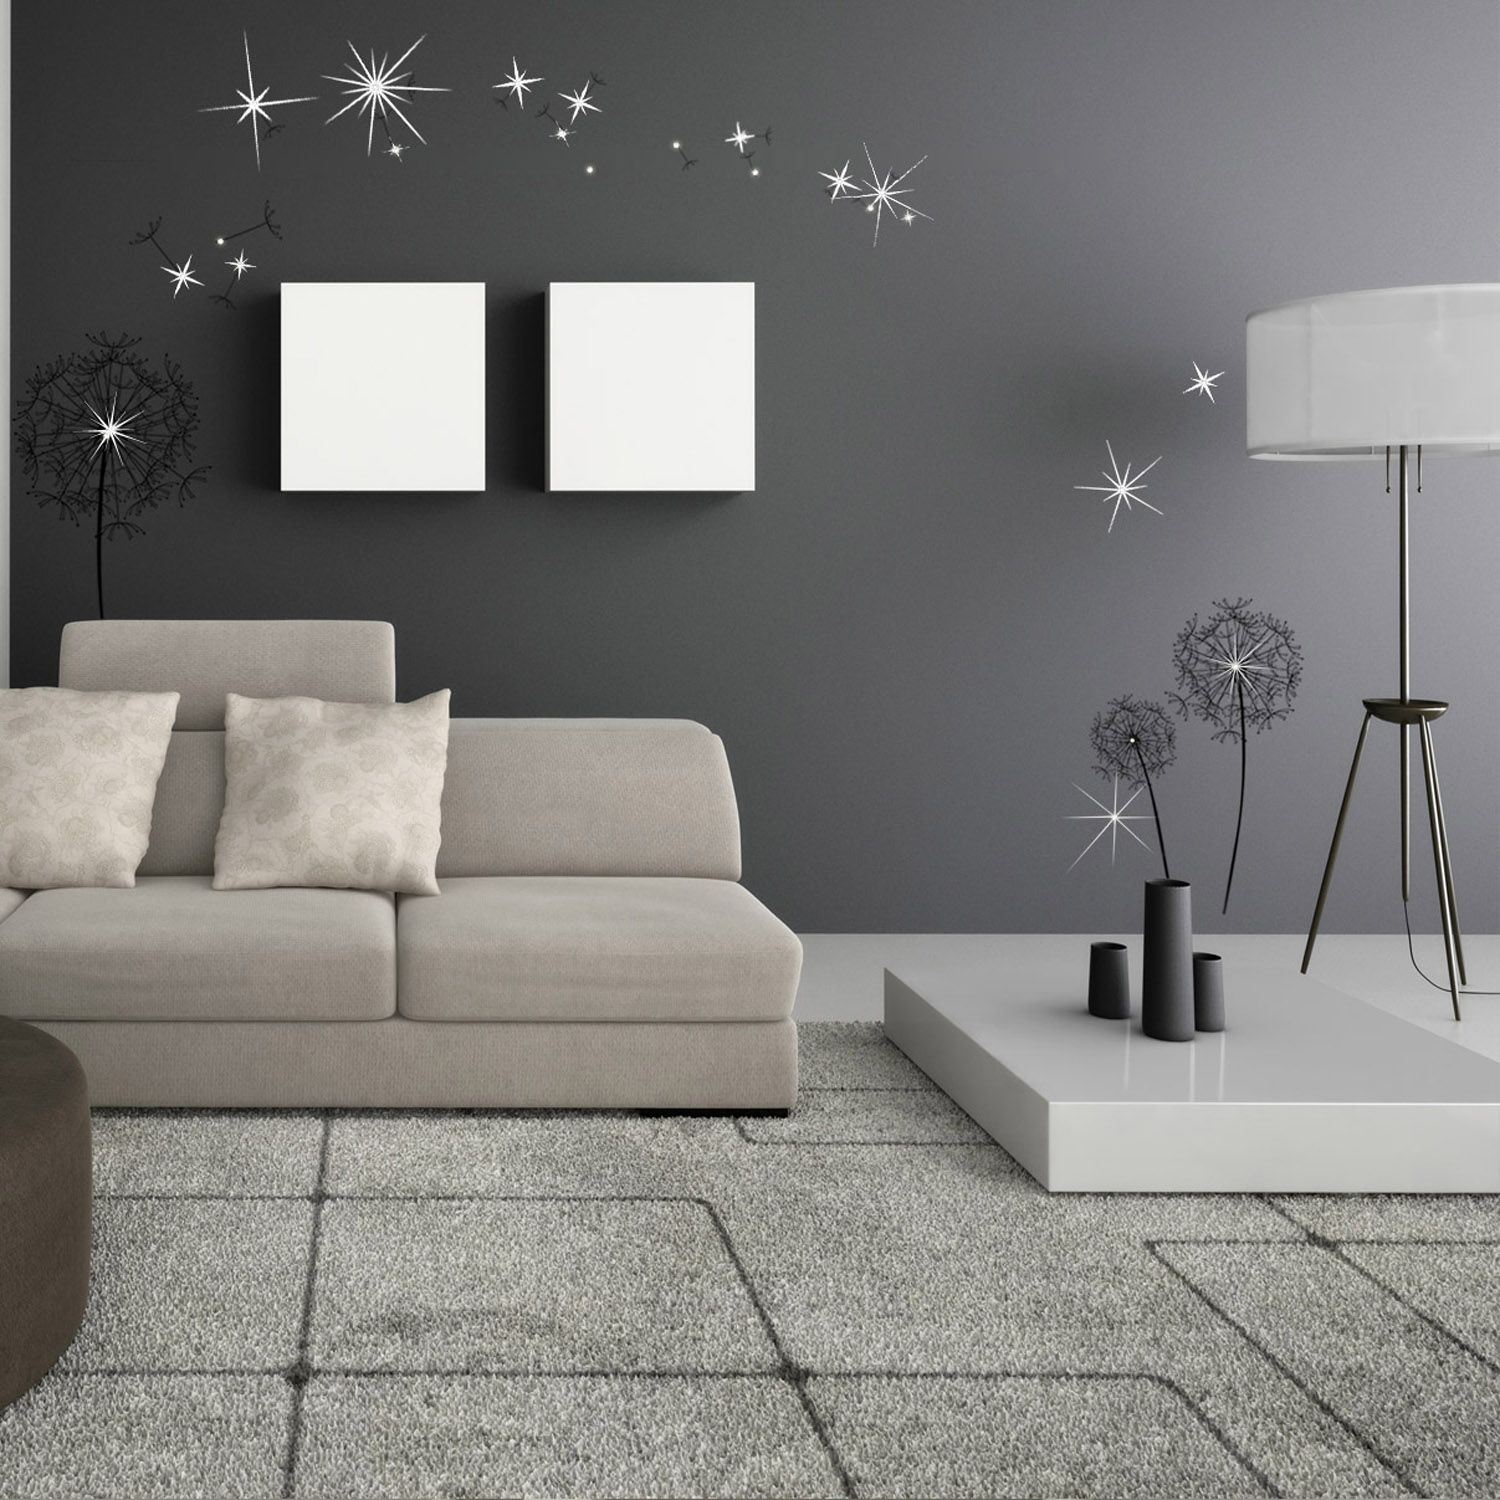 Wall Sticker Huge Black Dandelion with Swarovski Crystals